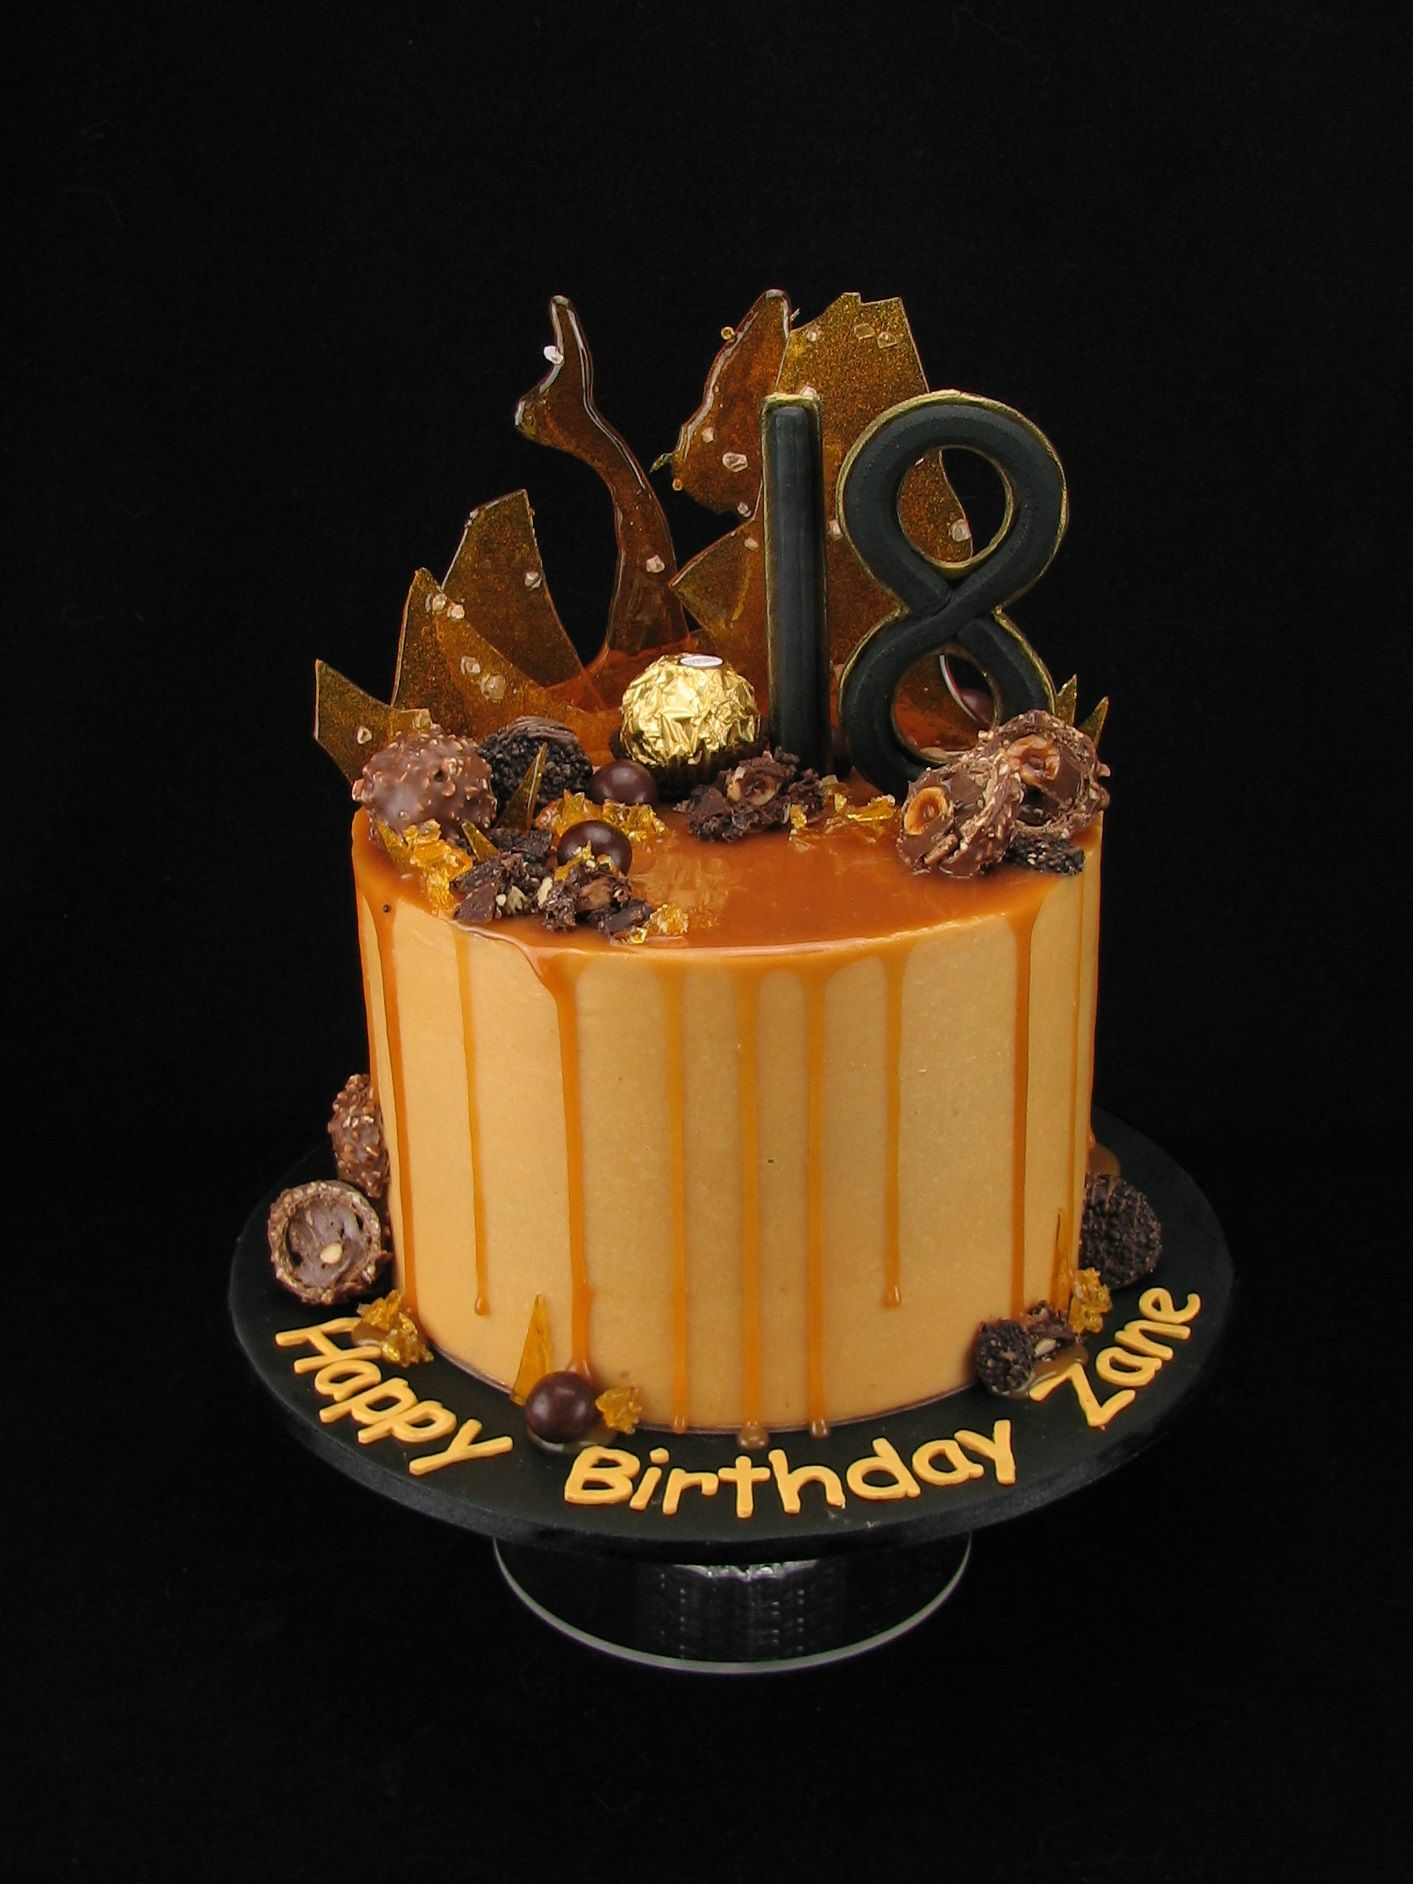 Caramel Mud Cake With Salted Ercream And Sauce Dripping Over The Edge This Decadent Has Been Decorated Ferrero Rochers